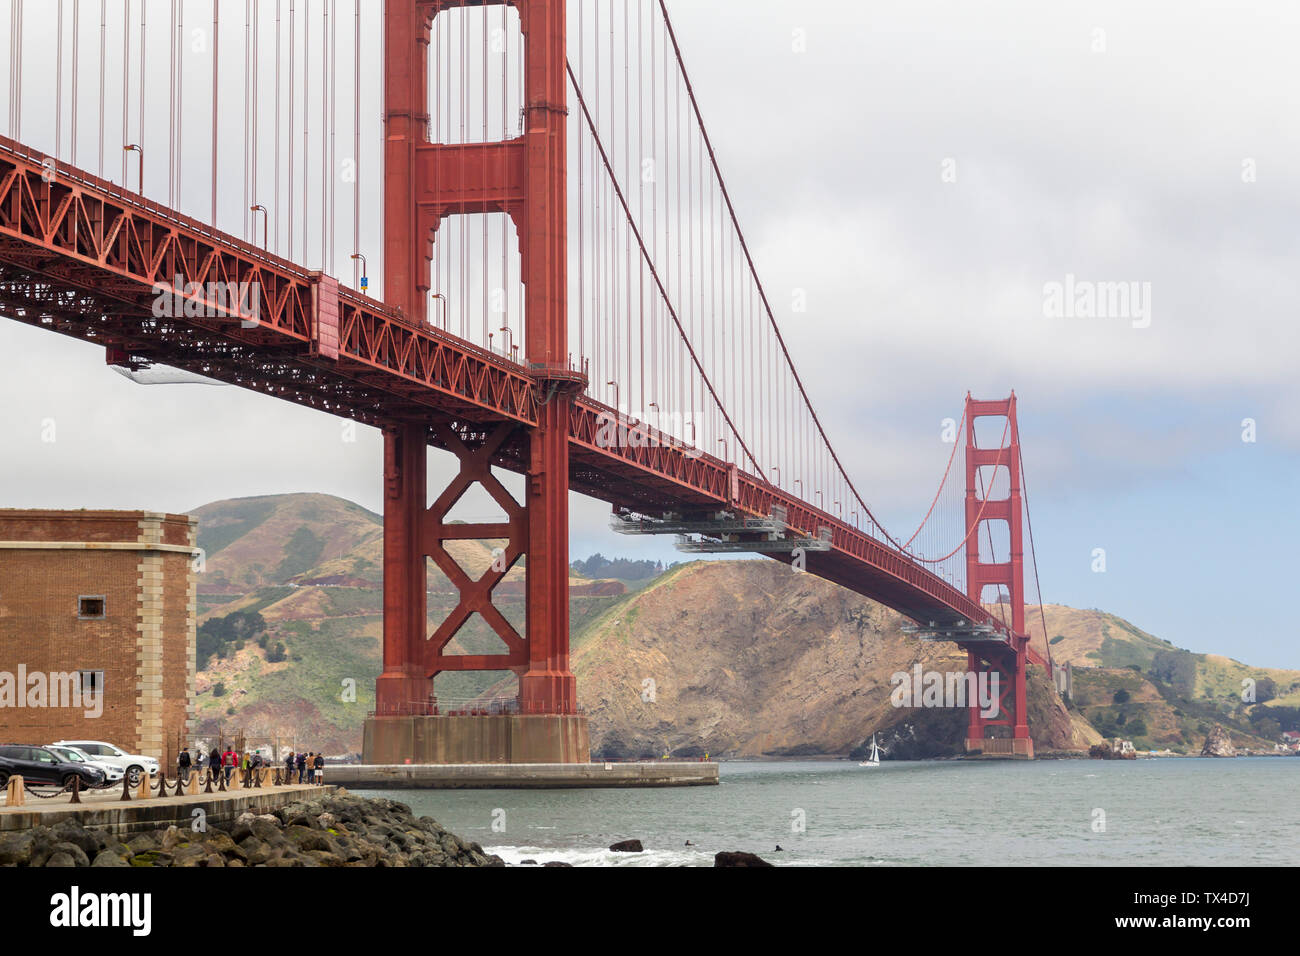 The Golden Gate bridge in San Francisco bay, United States Stock Photo